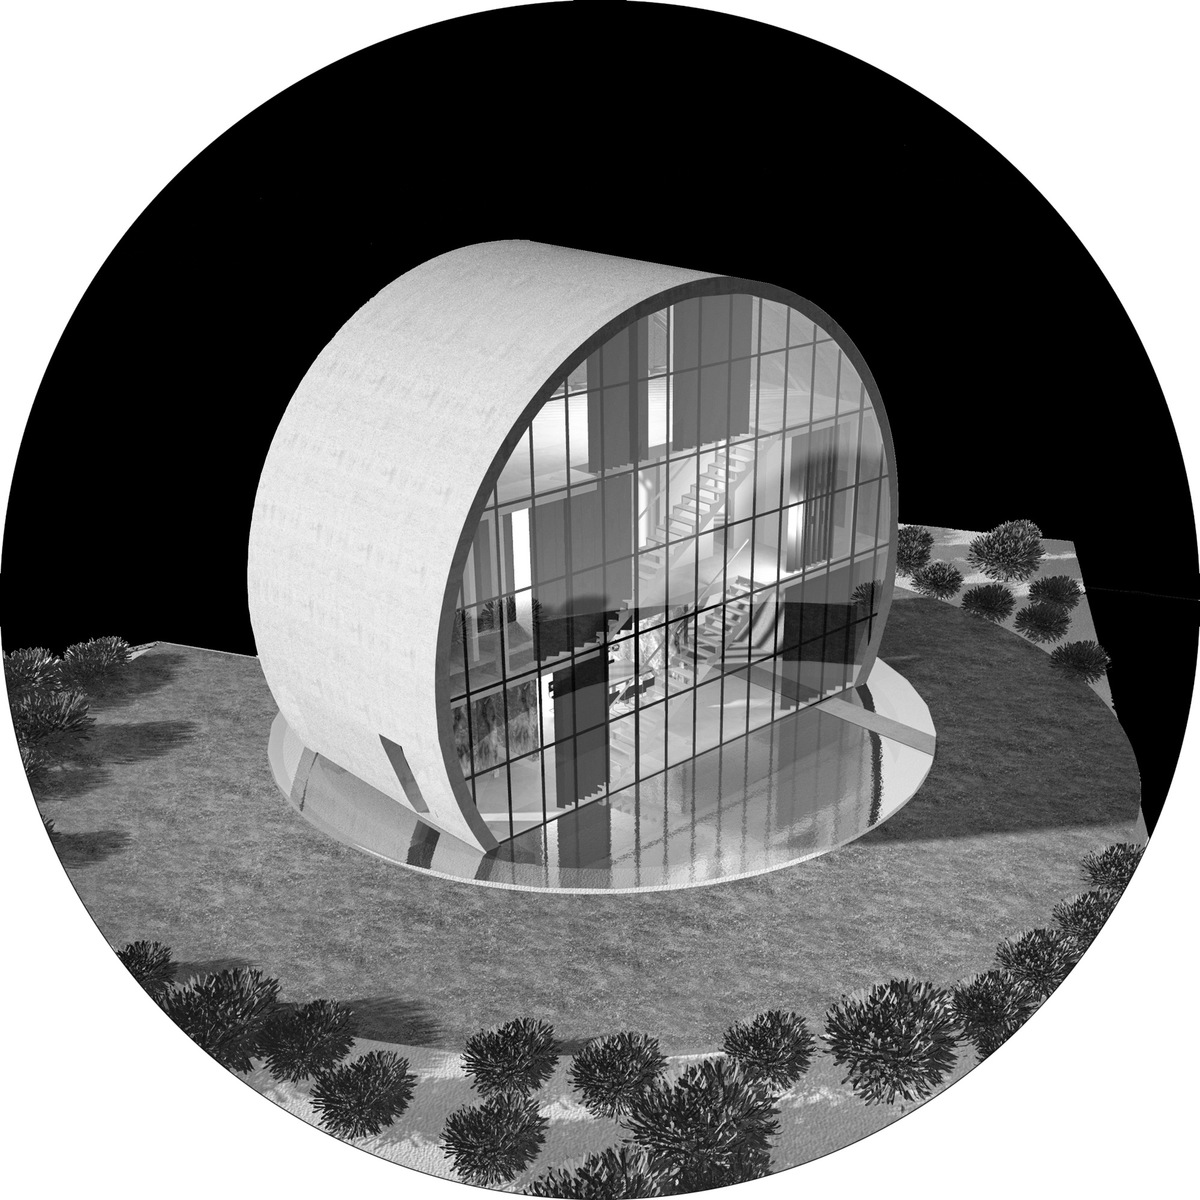 Axonometric of Eclipse, the owners choice. Image: A2.0 Studio di Architettura